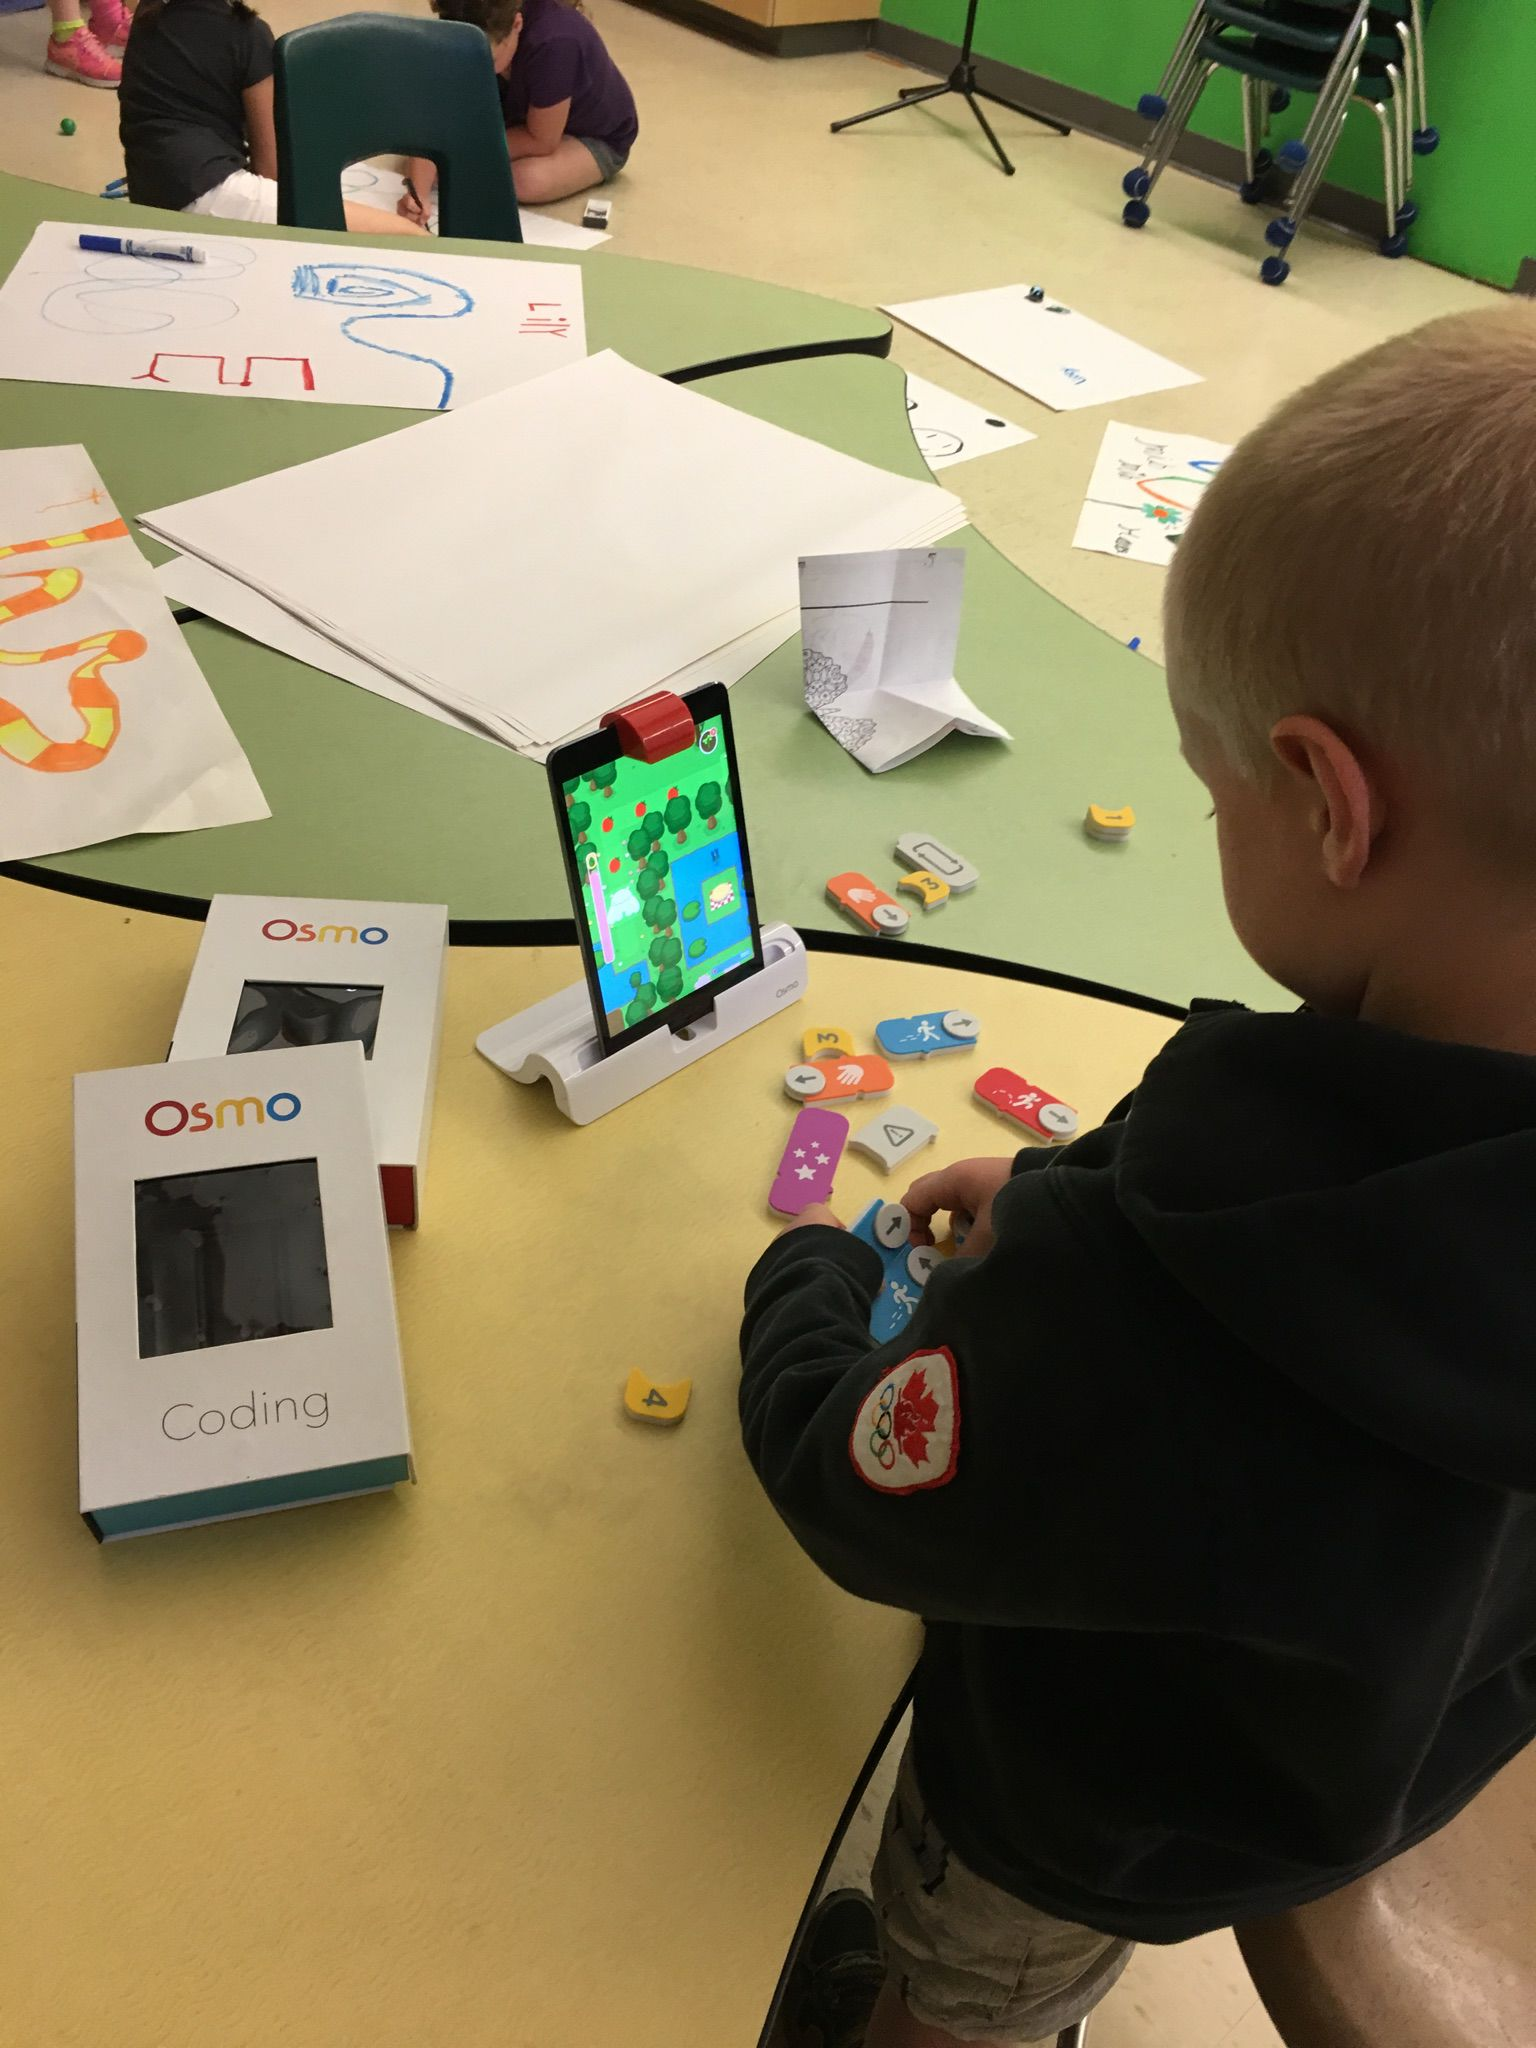 Students learning with OSMO